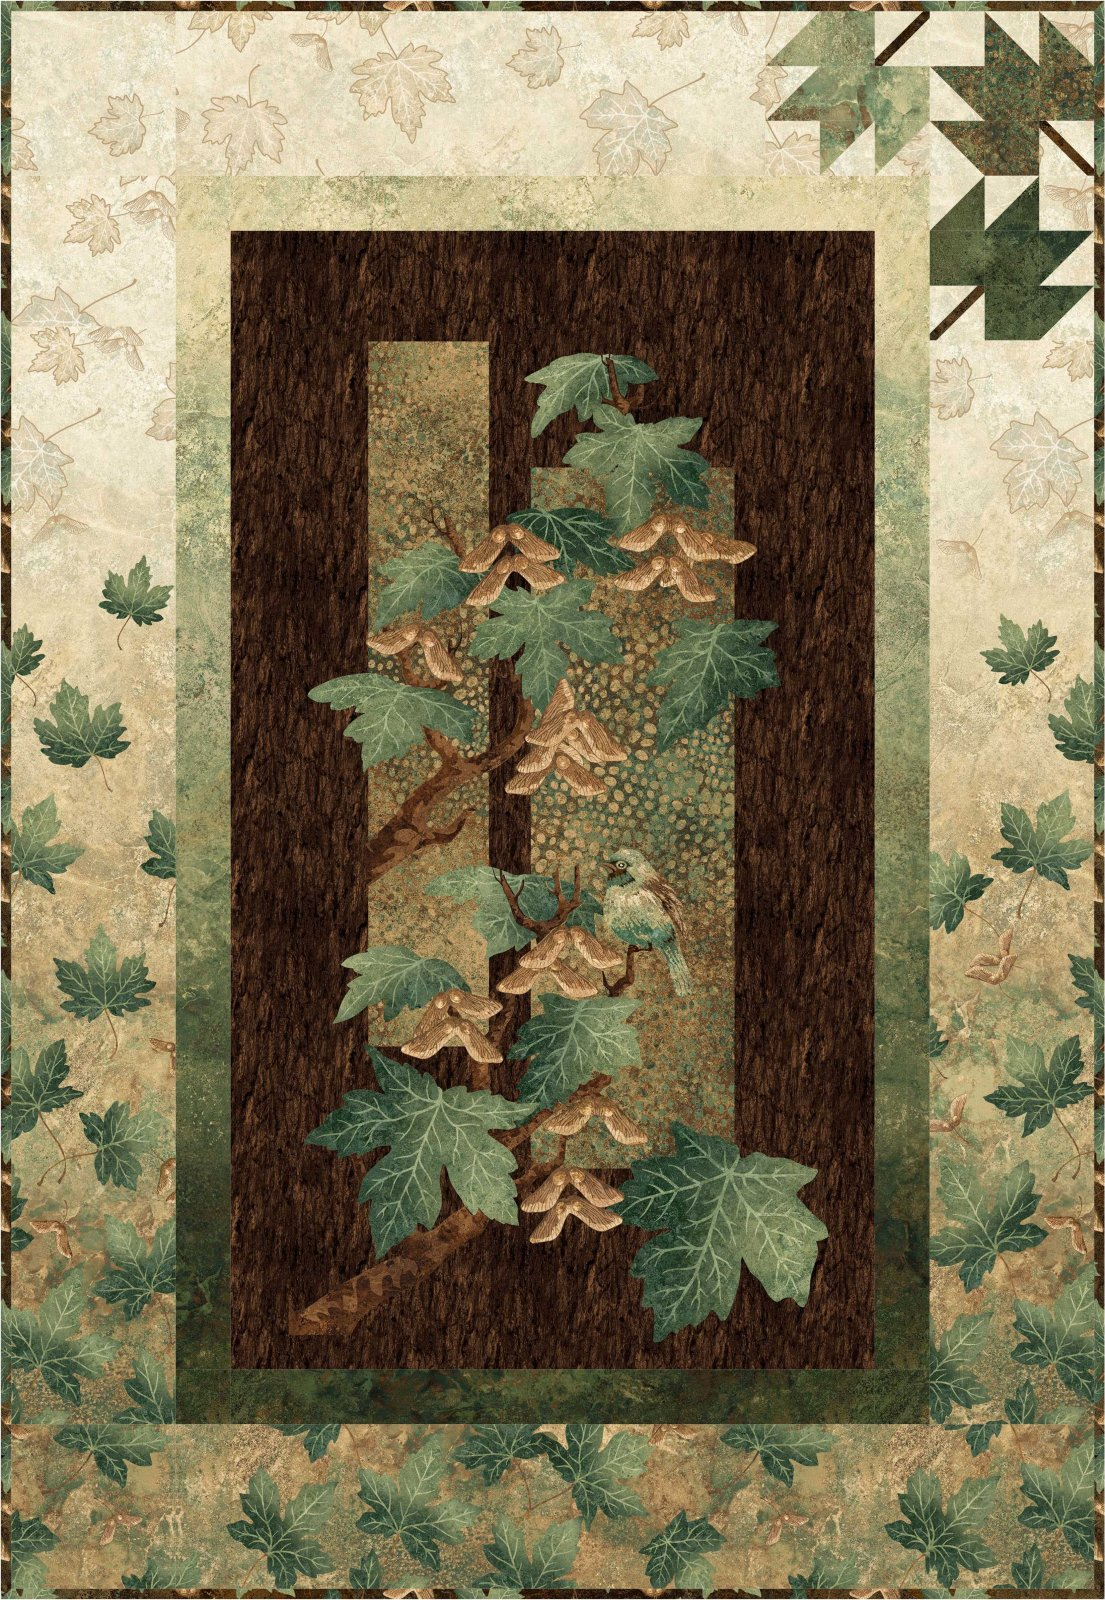 Autumn Splendor Wall Hanging kit - green